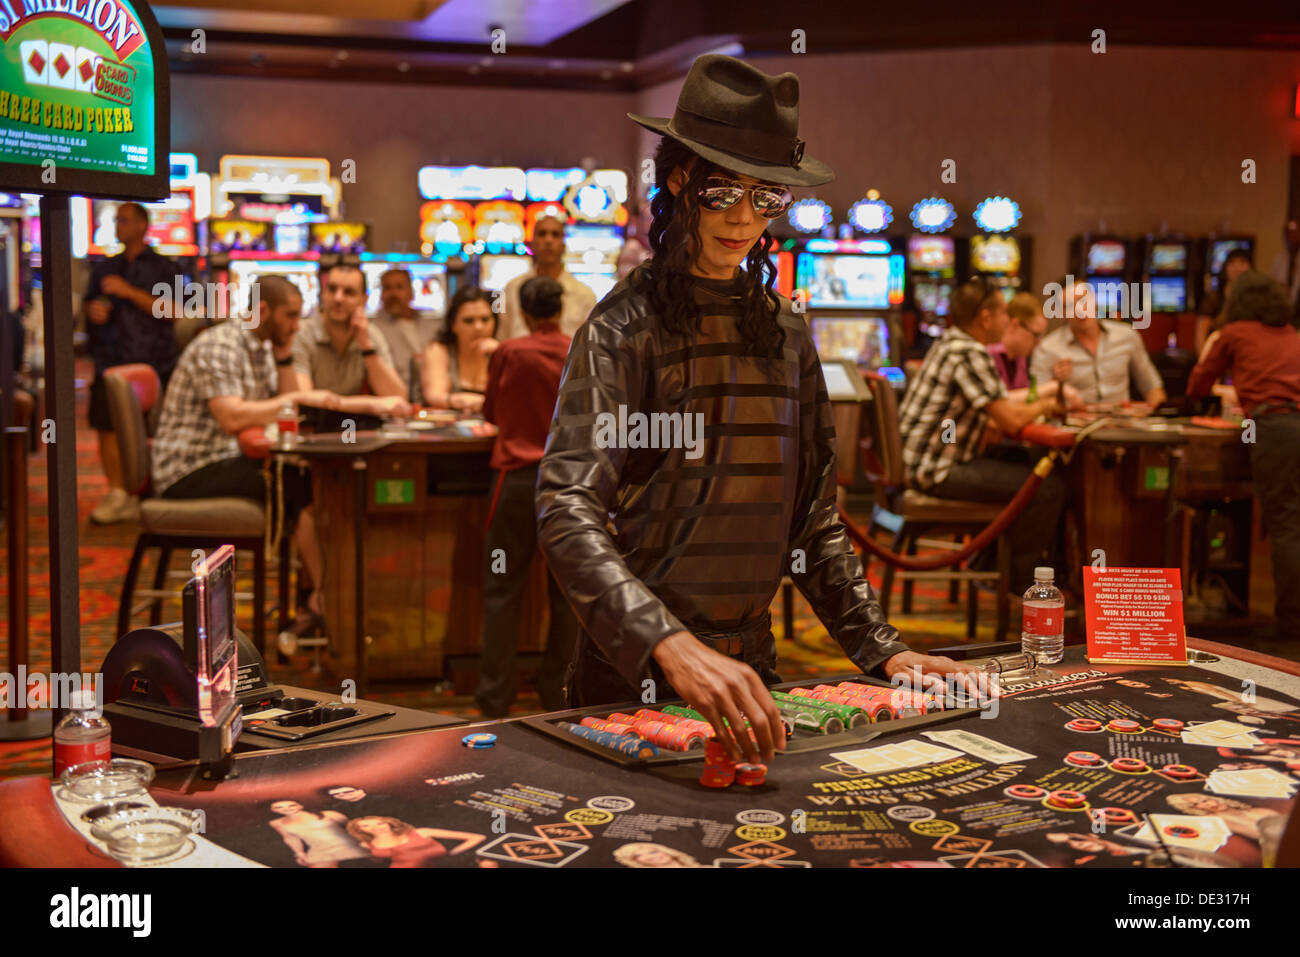 Poker Dealer Stock Photos Poker Dealer Stock Images Alamy